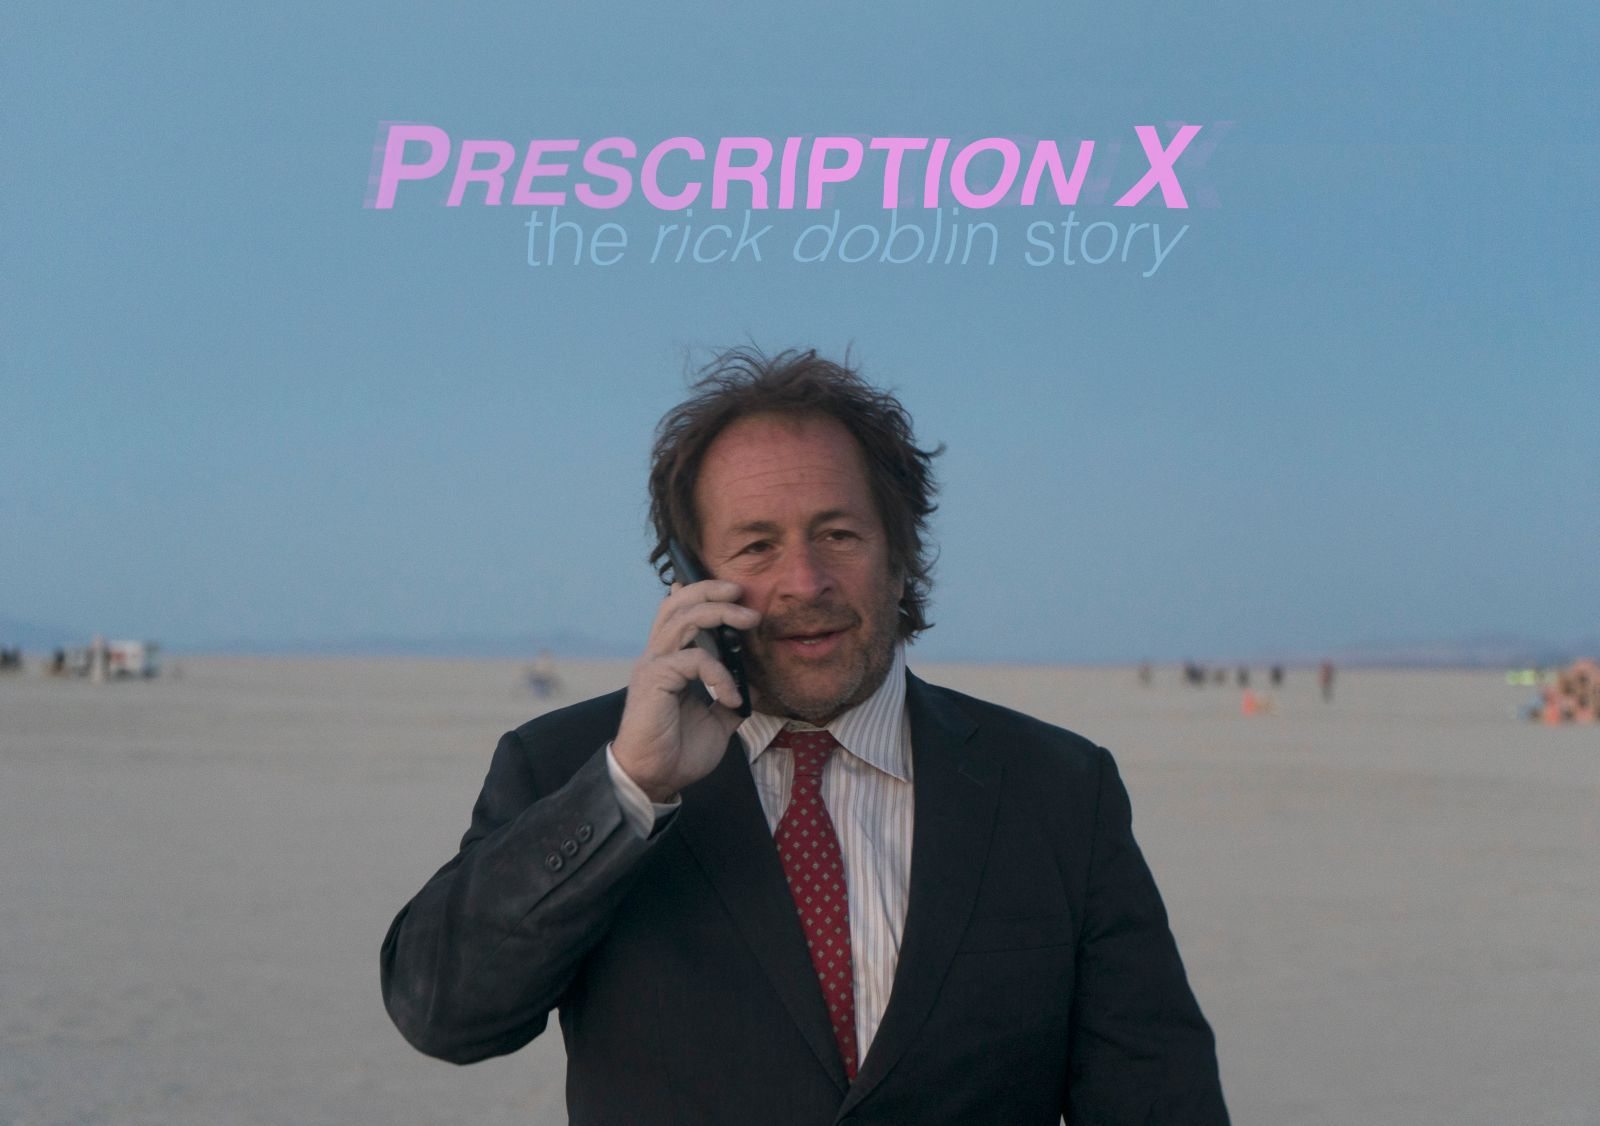 Prescription X: The Rick Doblin Story